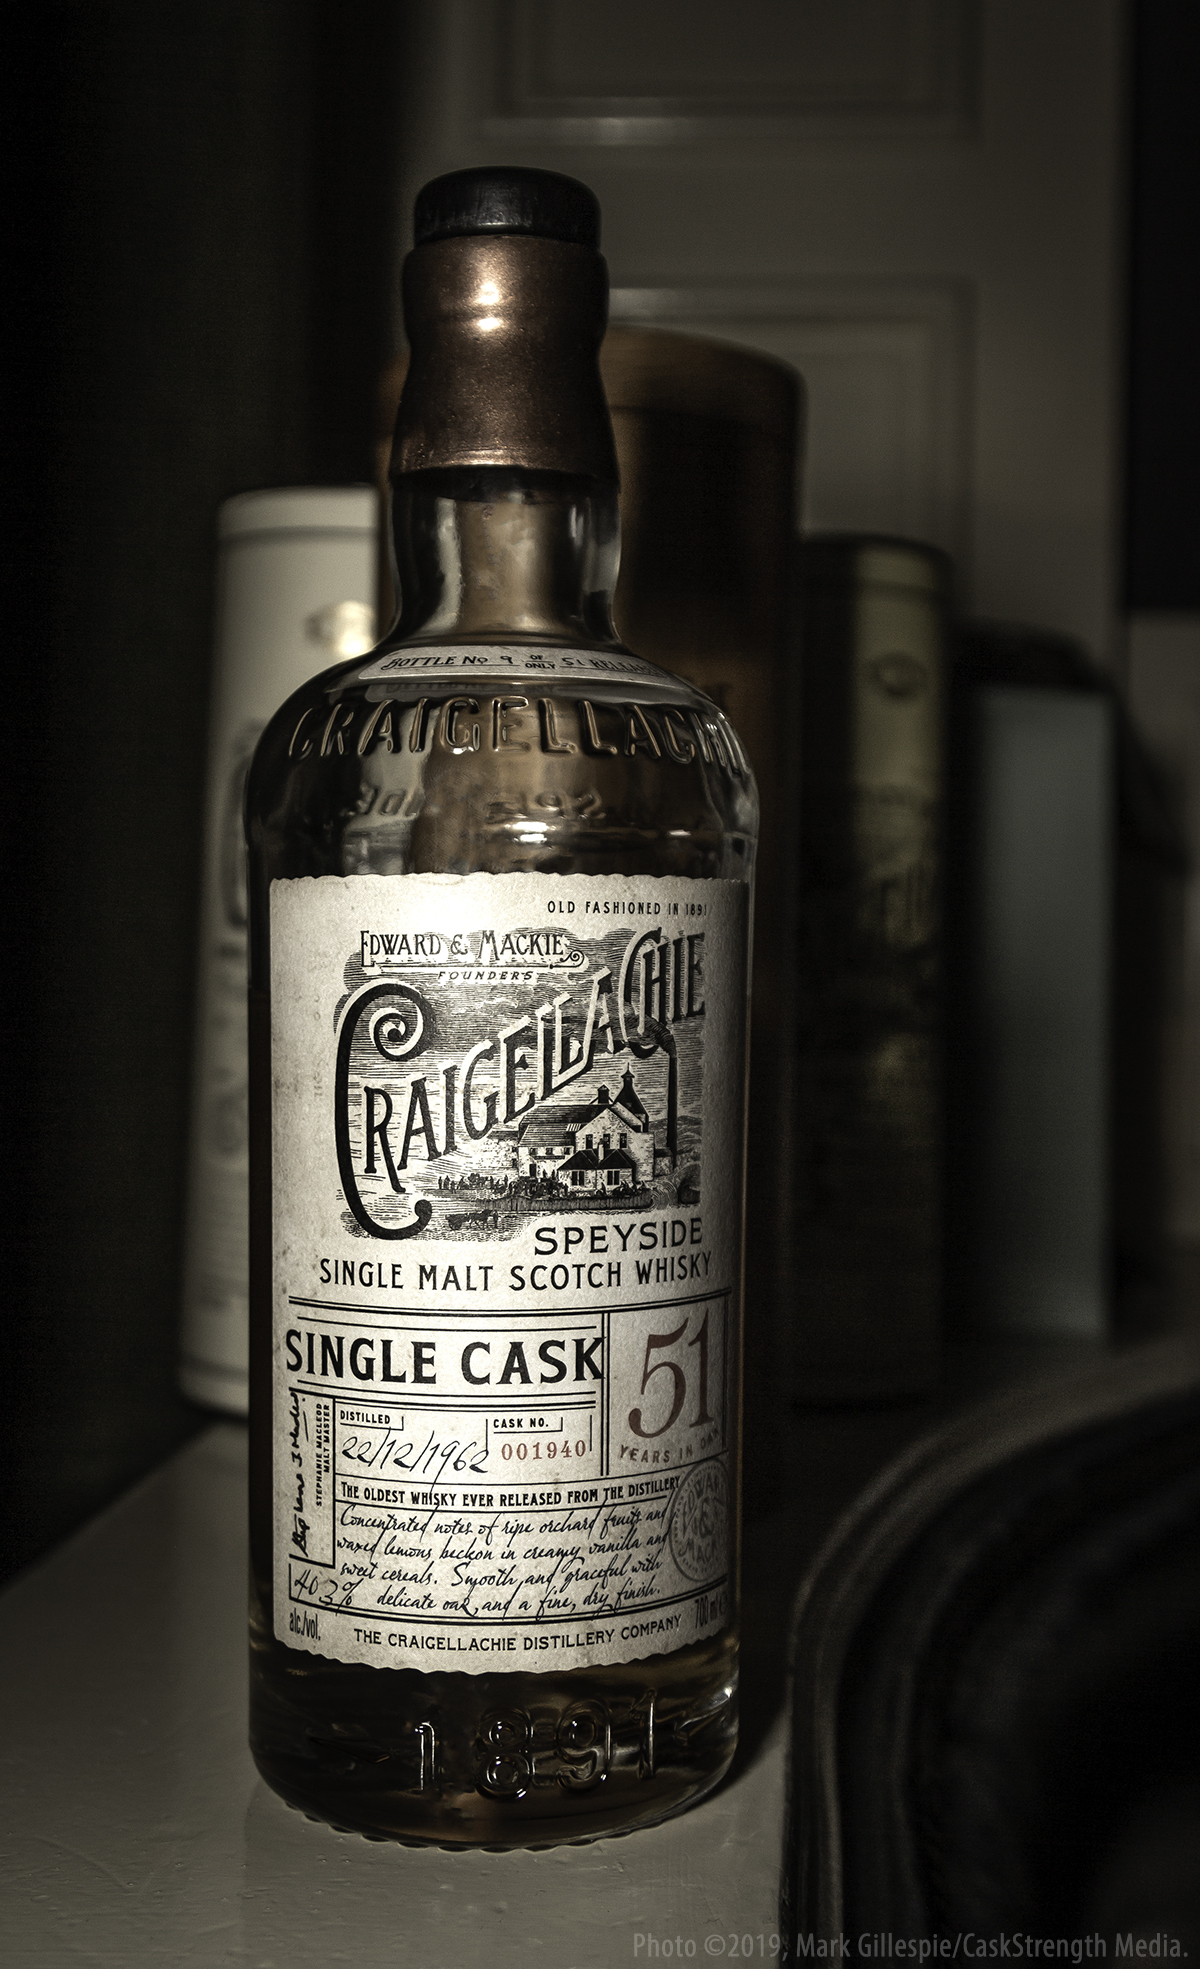 This is one of only 51 bottles of the Craigellachie 51-year-old single cask from 1962. 150 people had the chance to taste it for free last November in London, and 150 more will get to taste it from May 7-9 in New York City. Two more free tastings are planned for later this year in South Africa and Australia. Photo ©2019, Mark Gillespie/CaskStrength Media.